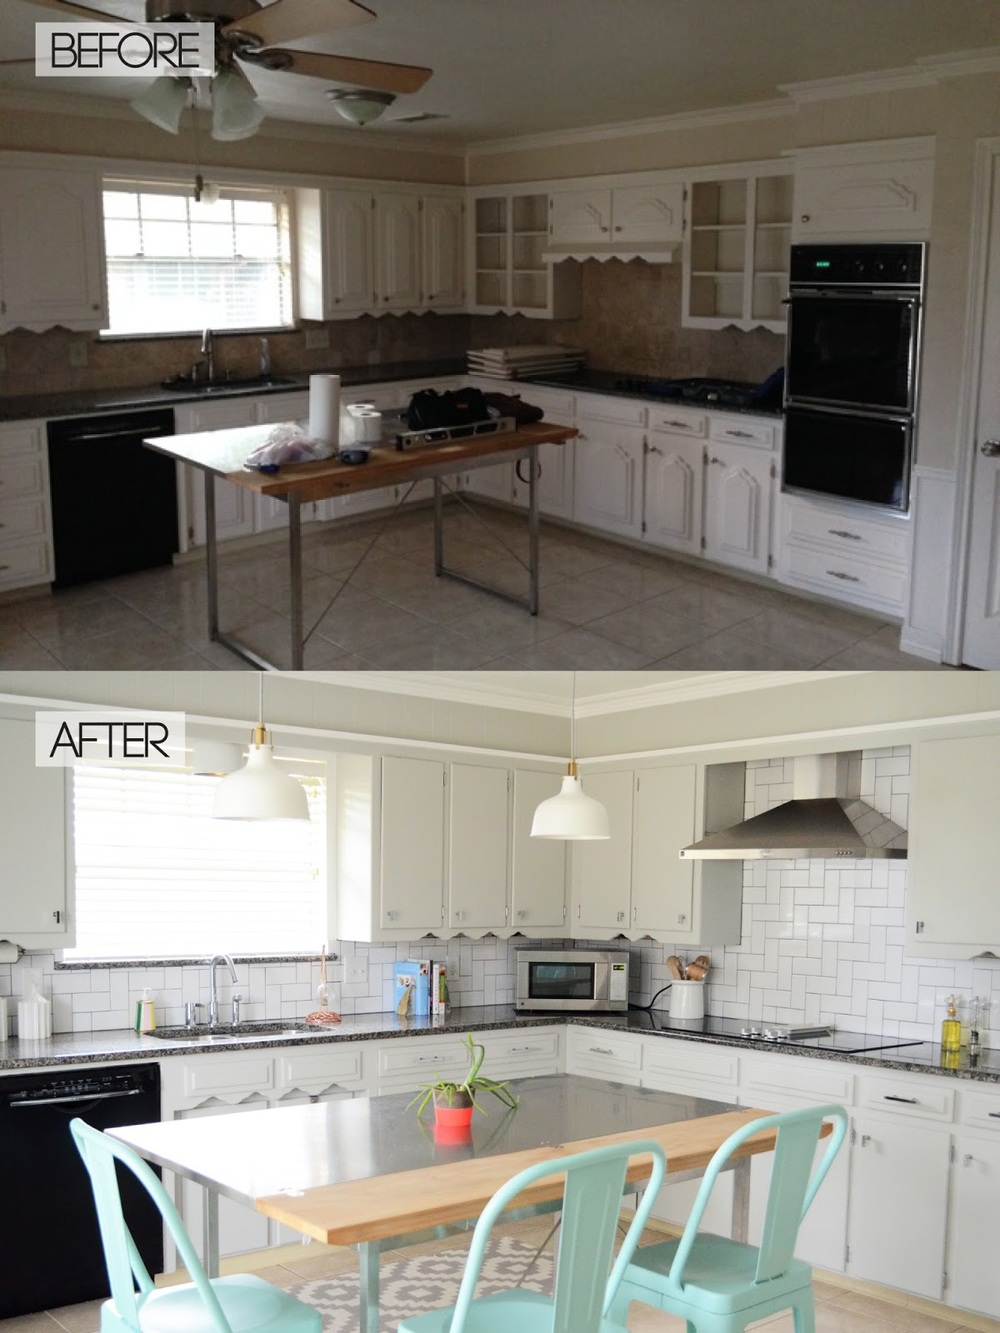 Kitchen_BEFORE_and_AFTER.jpg